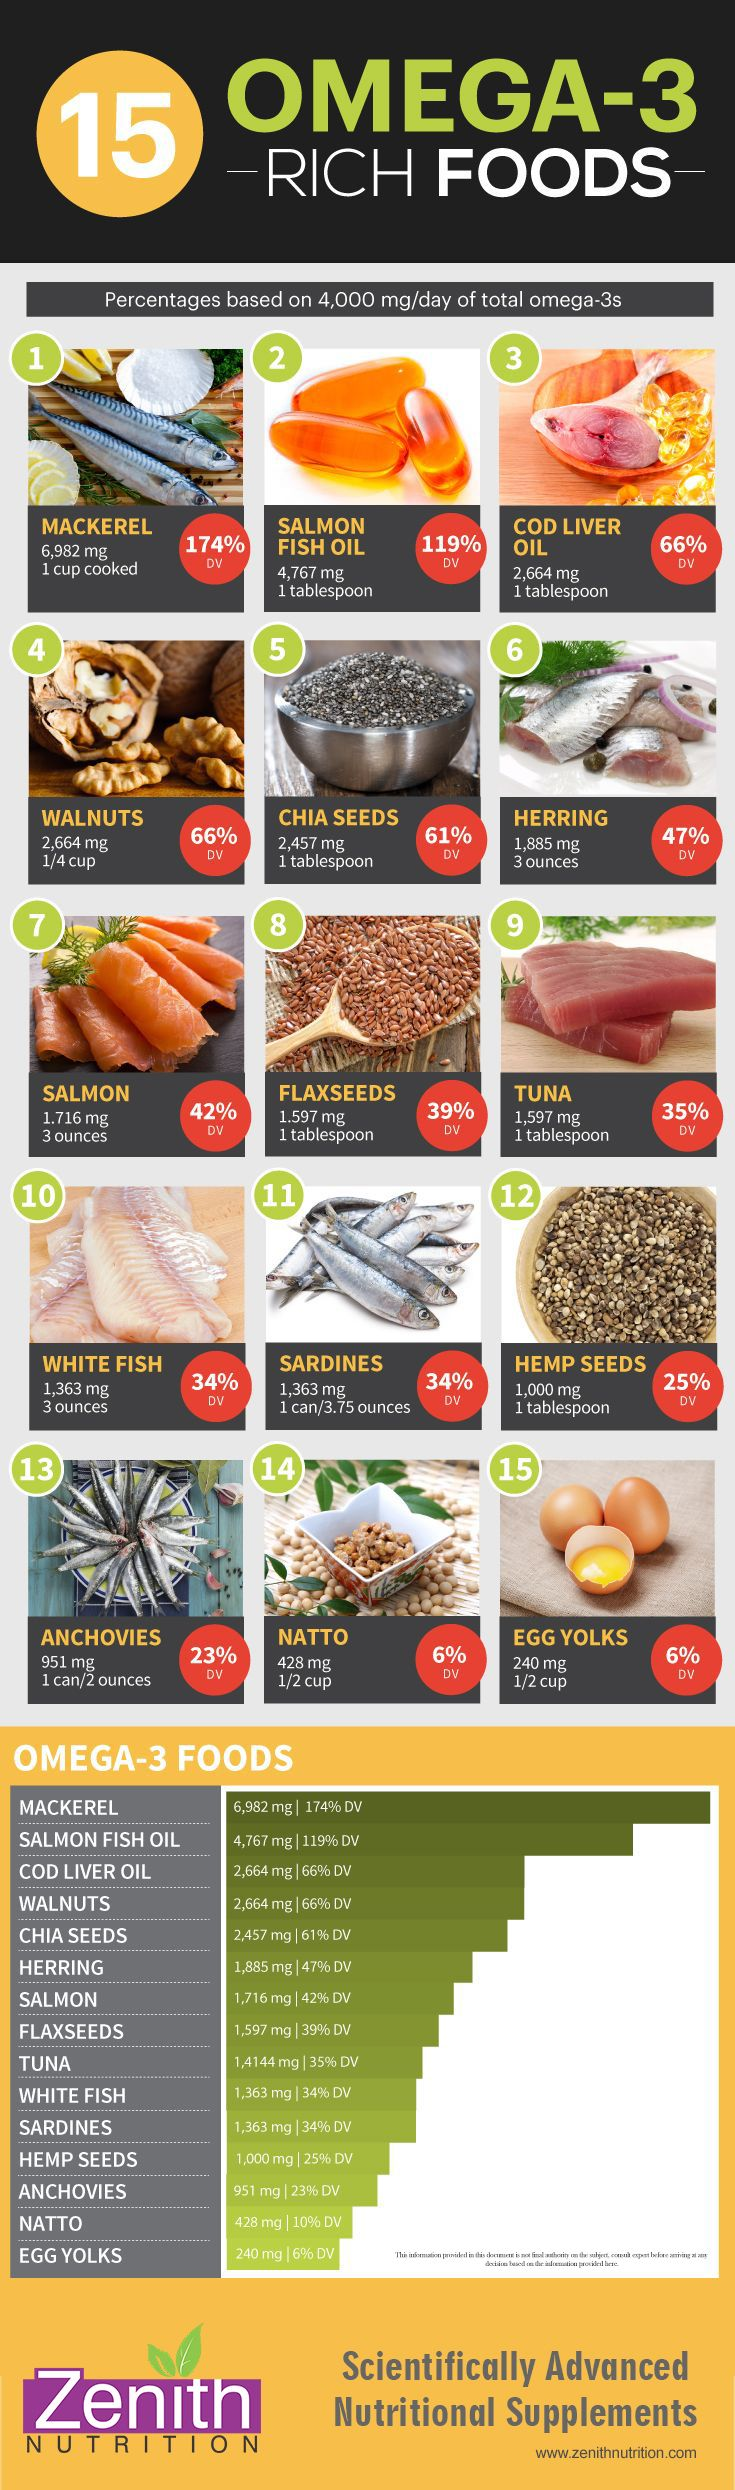 Omega-3 Rich Food. Mackerel, Salmon fish oil, Cod liver oil, Walnuts, Chia seeds, herring, salmon, flax seeds, Tuna, white fish, sardines, hemp seeds, anchovies, natto, egg yolks. Best supplements from Zenith Nutrition. Health Supplements. Nutritional Supplements. Health Infographics